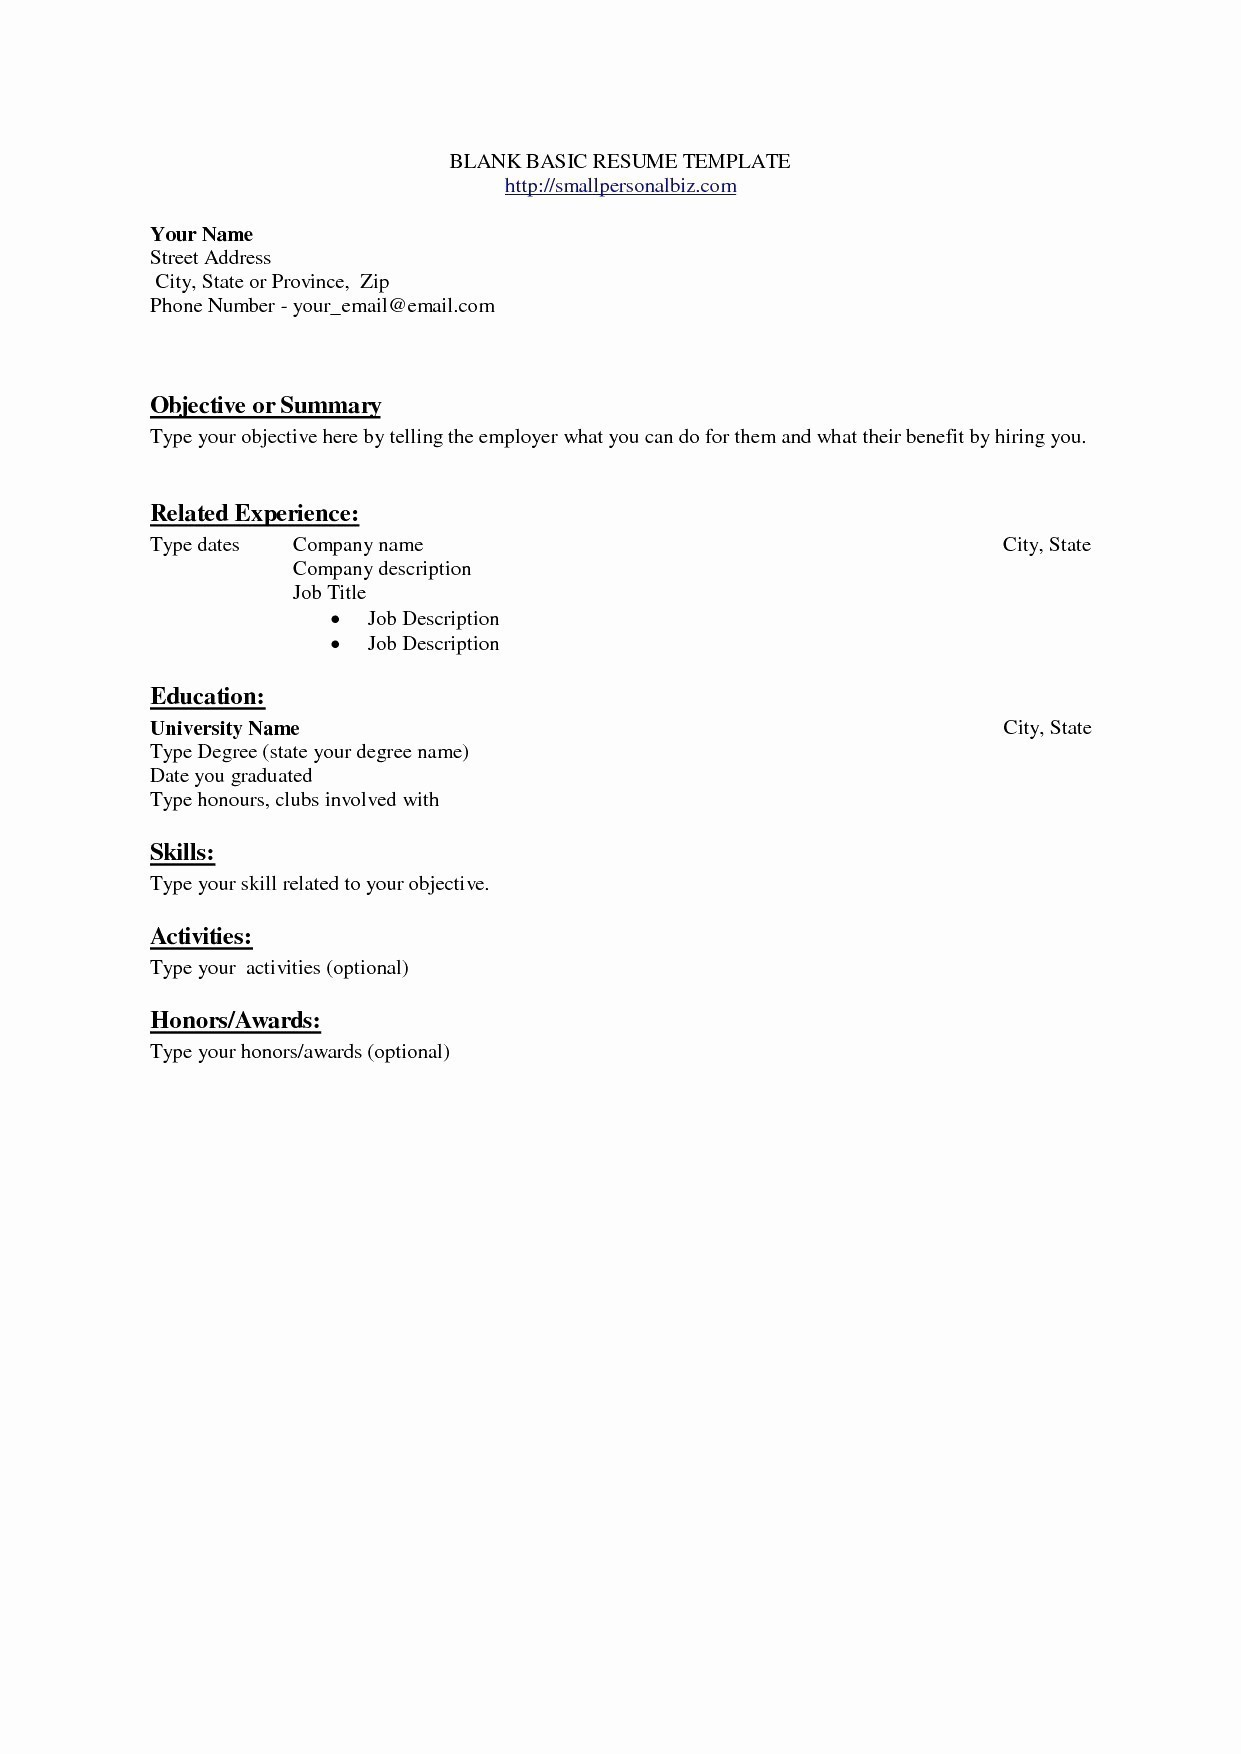 Goresumes Reviews - 16 Resume Professional Writers Reviews